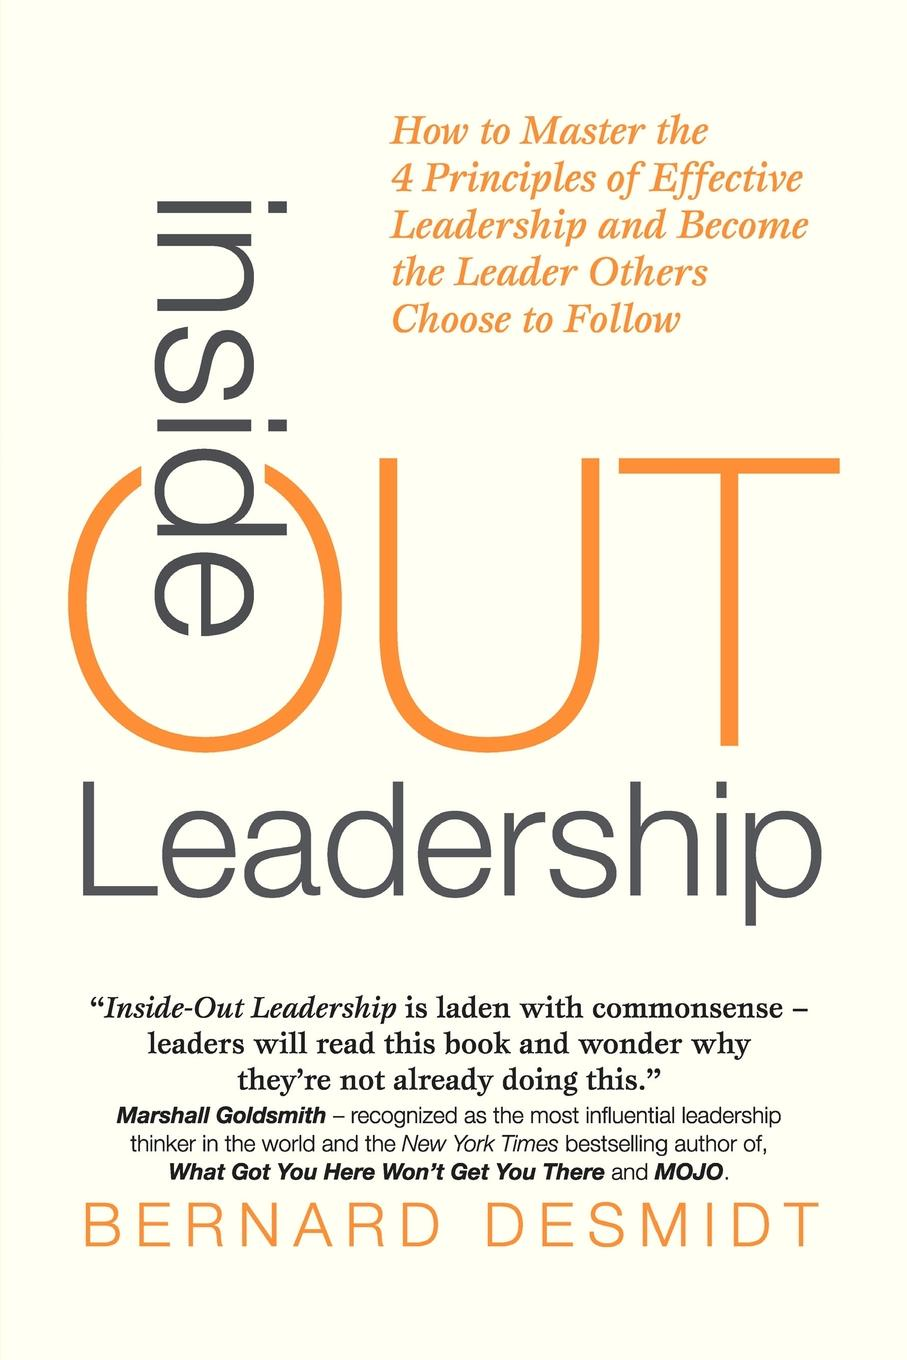 Фото - Bernard Desmidt Inside-Out Leadership. How to Master the 4 Principles of Effective Leadership and Become a Leader Others Choose to Follow frances institute hesselbein leadership leader to leader ltl volume 70 fall 2013